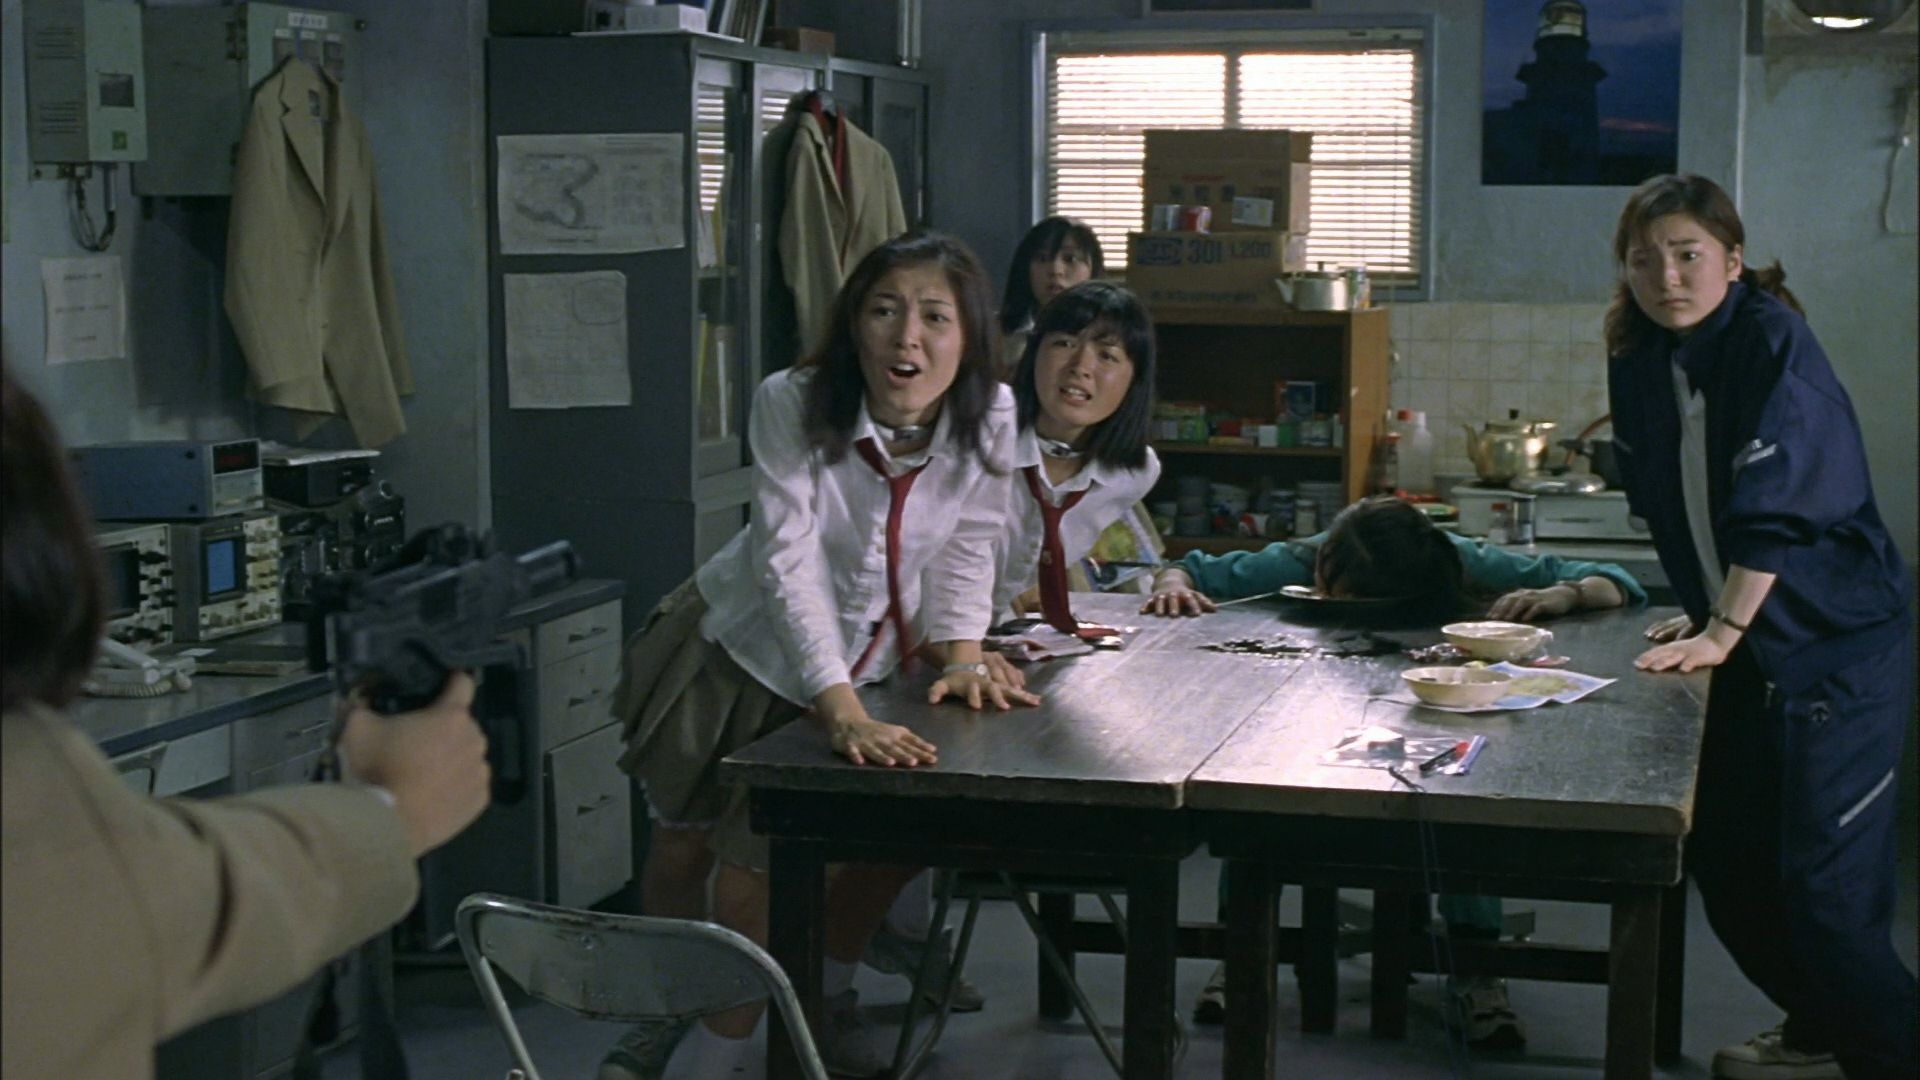 Film live action - Battle Royale - scene